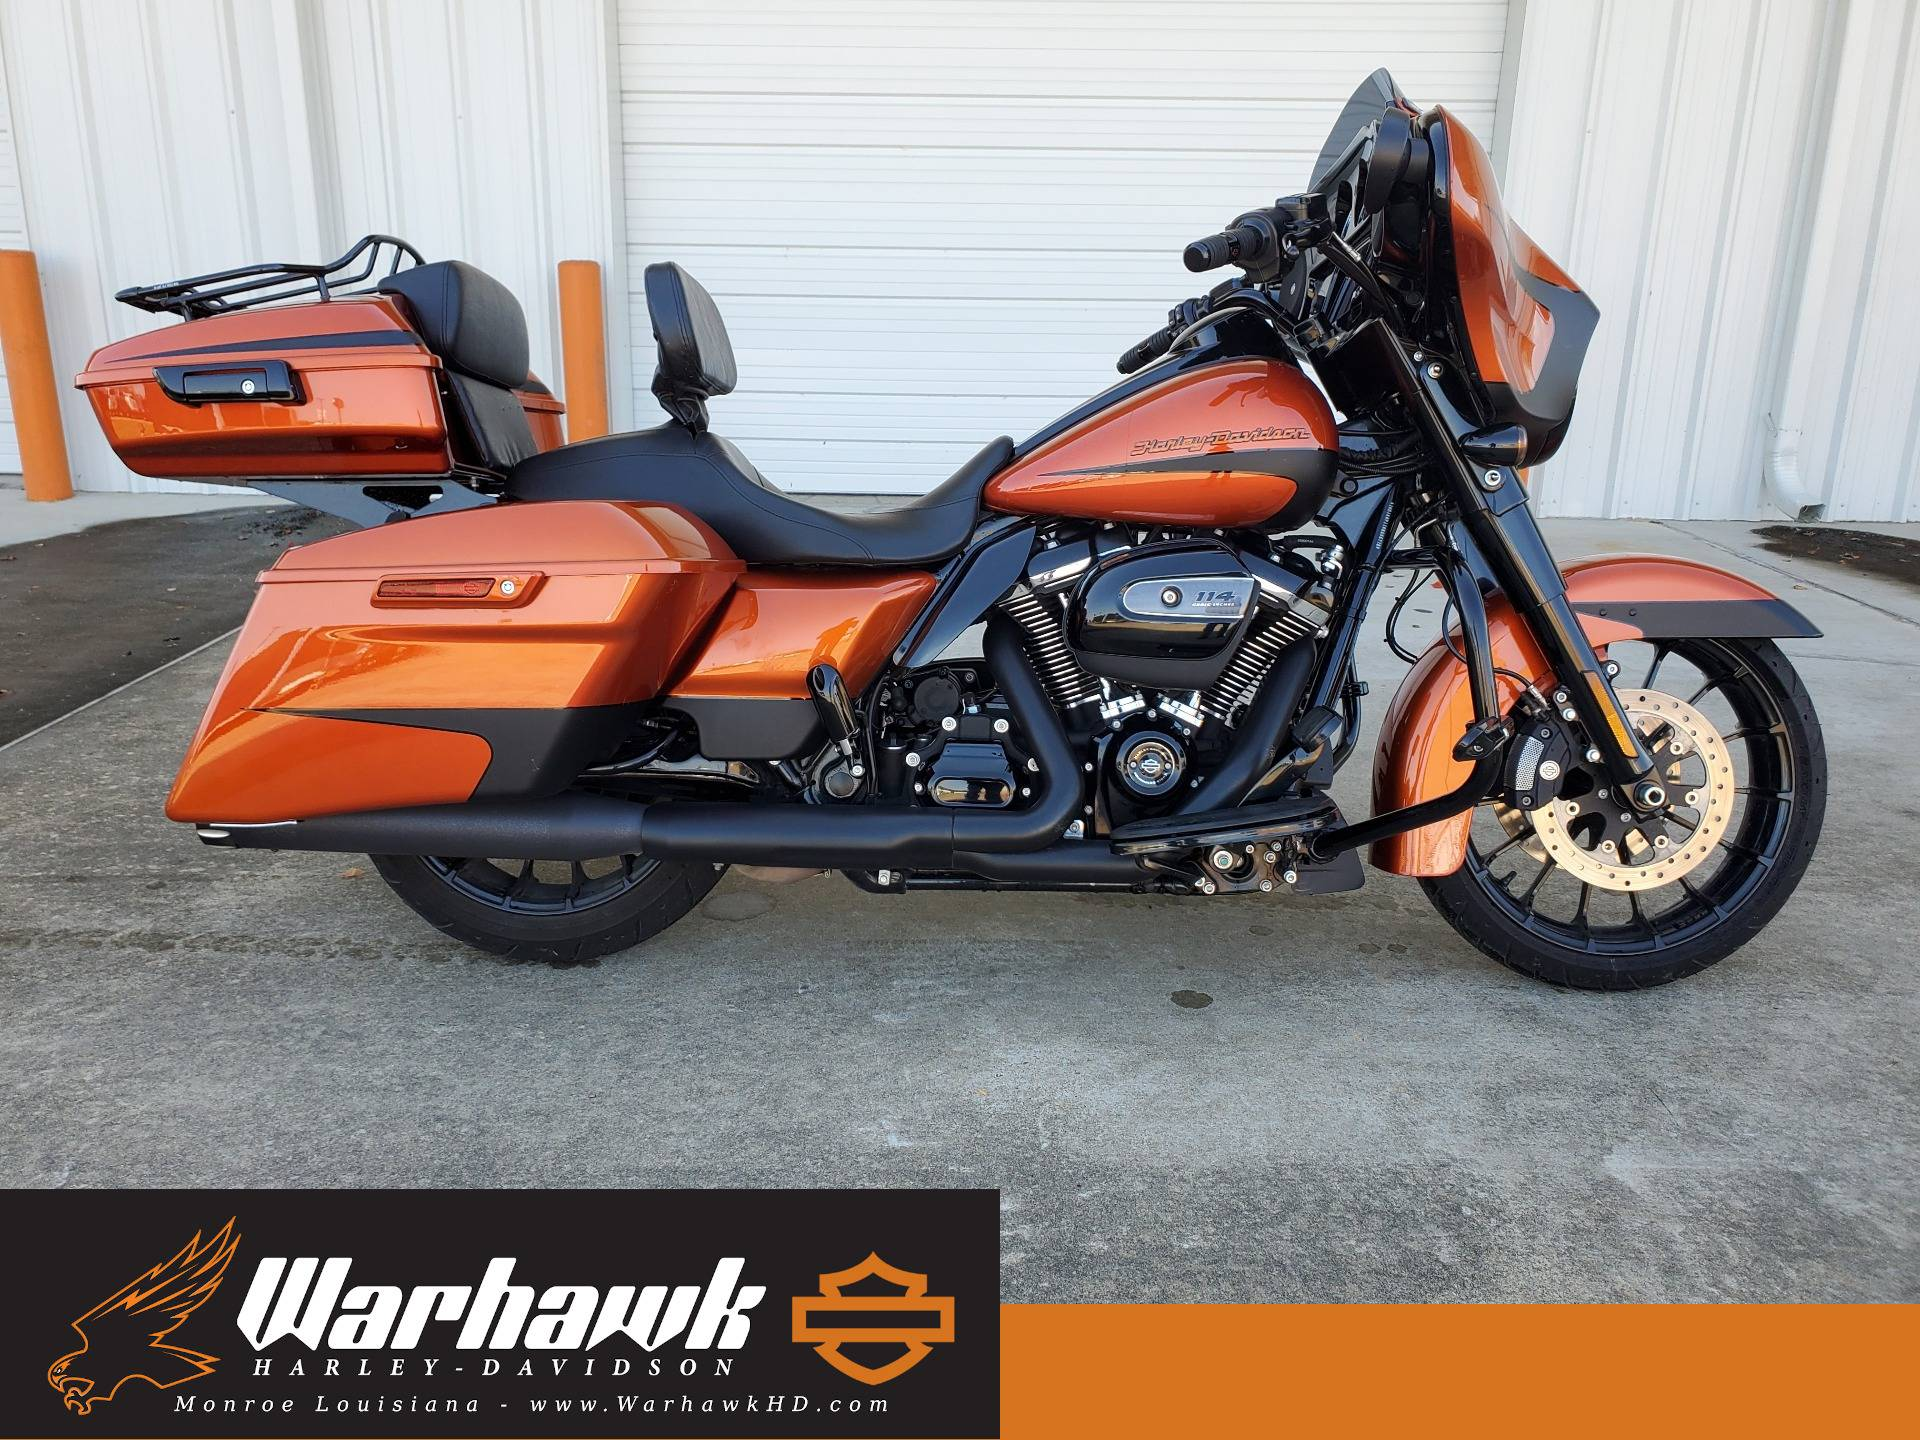 2019 Harley-Davison Street Glide Special for sale near me - Photo 1